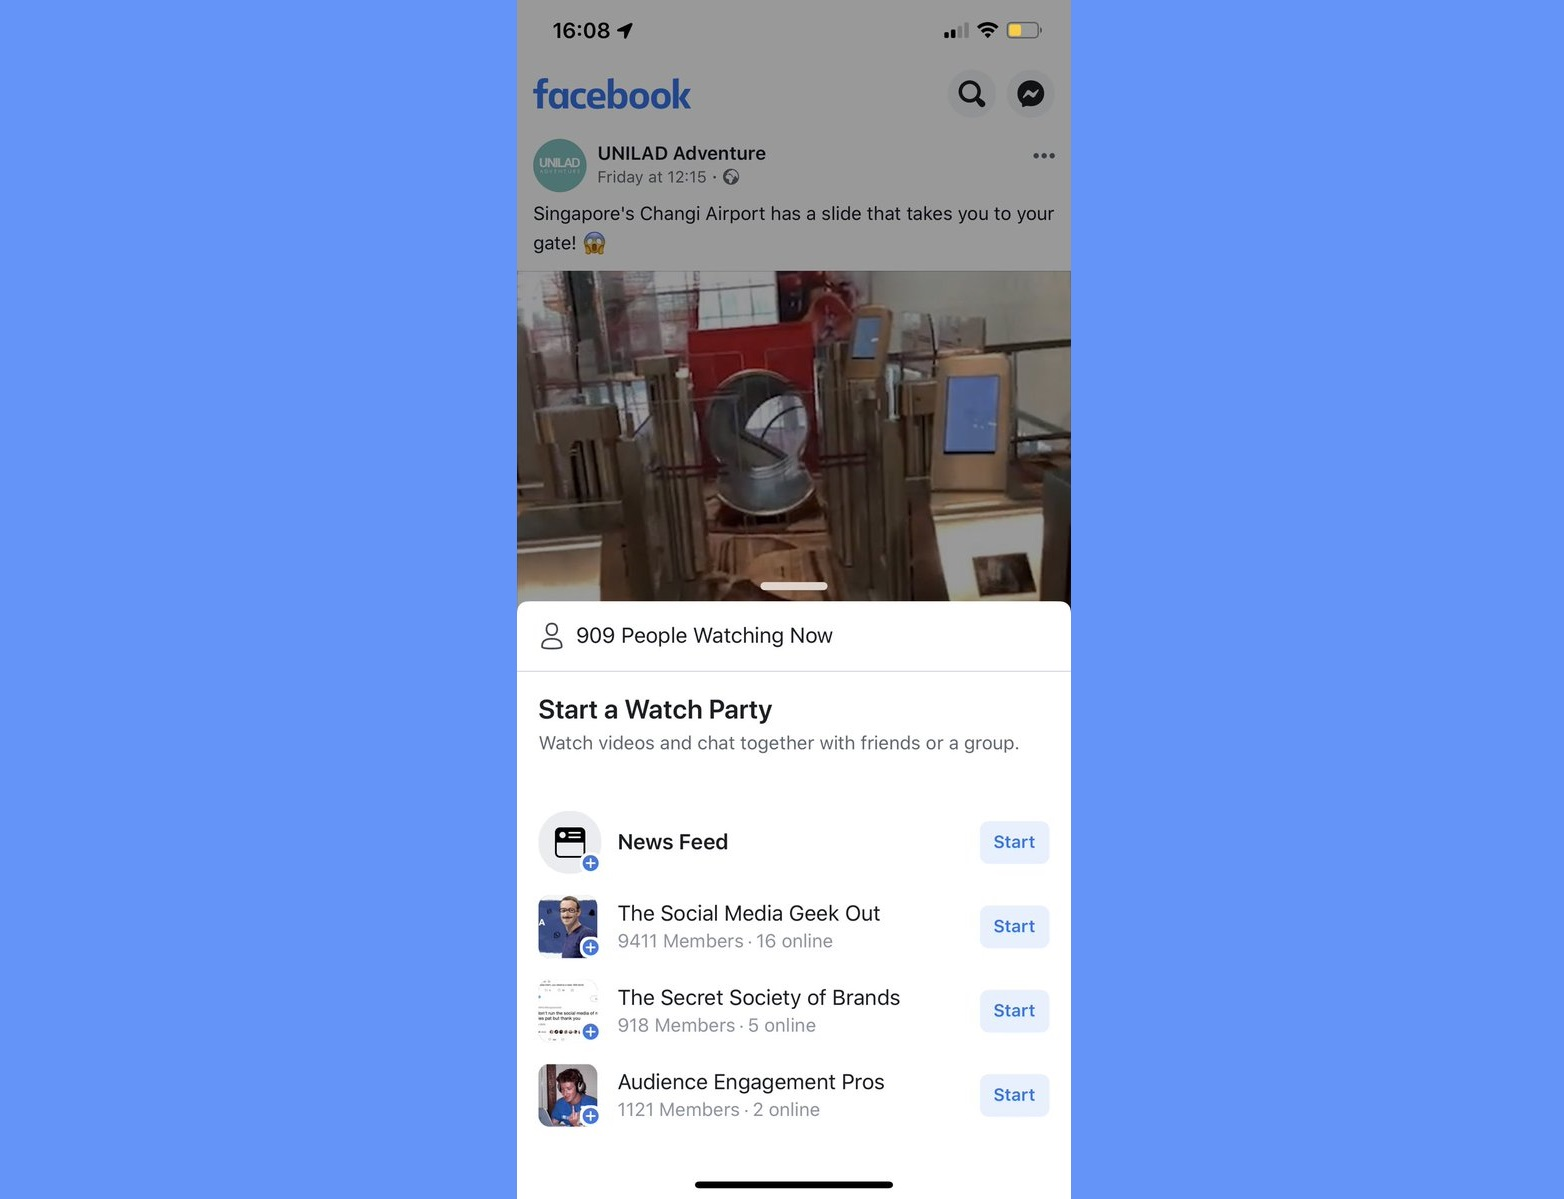 Facebook is using News Feed Videos to Promote Watch Parties